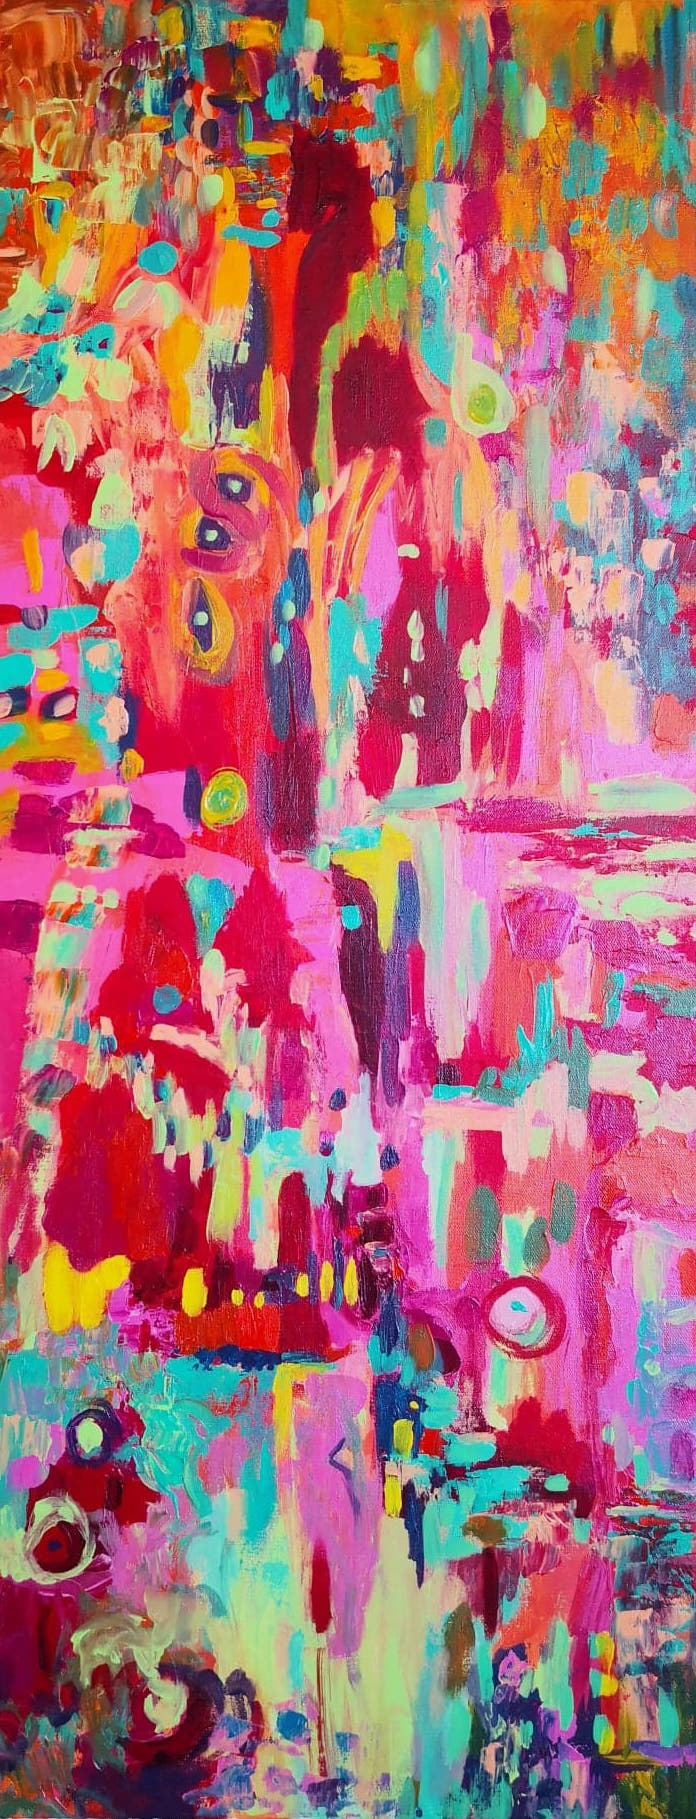 Heather M. Johnson, Checkmate, Acrylic on canvas, 40 x 16 inches, $450.jpg